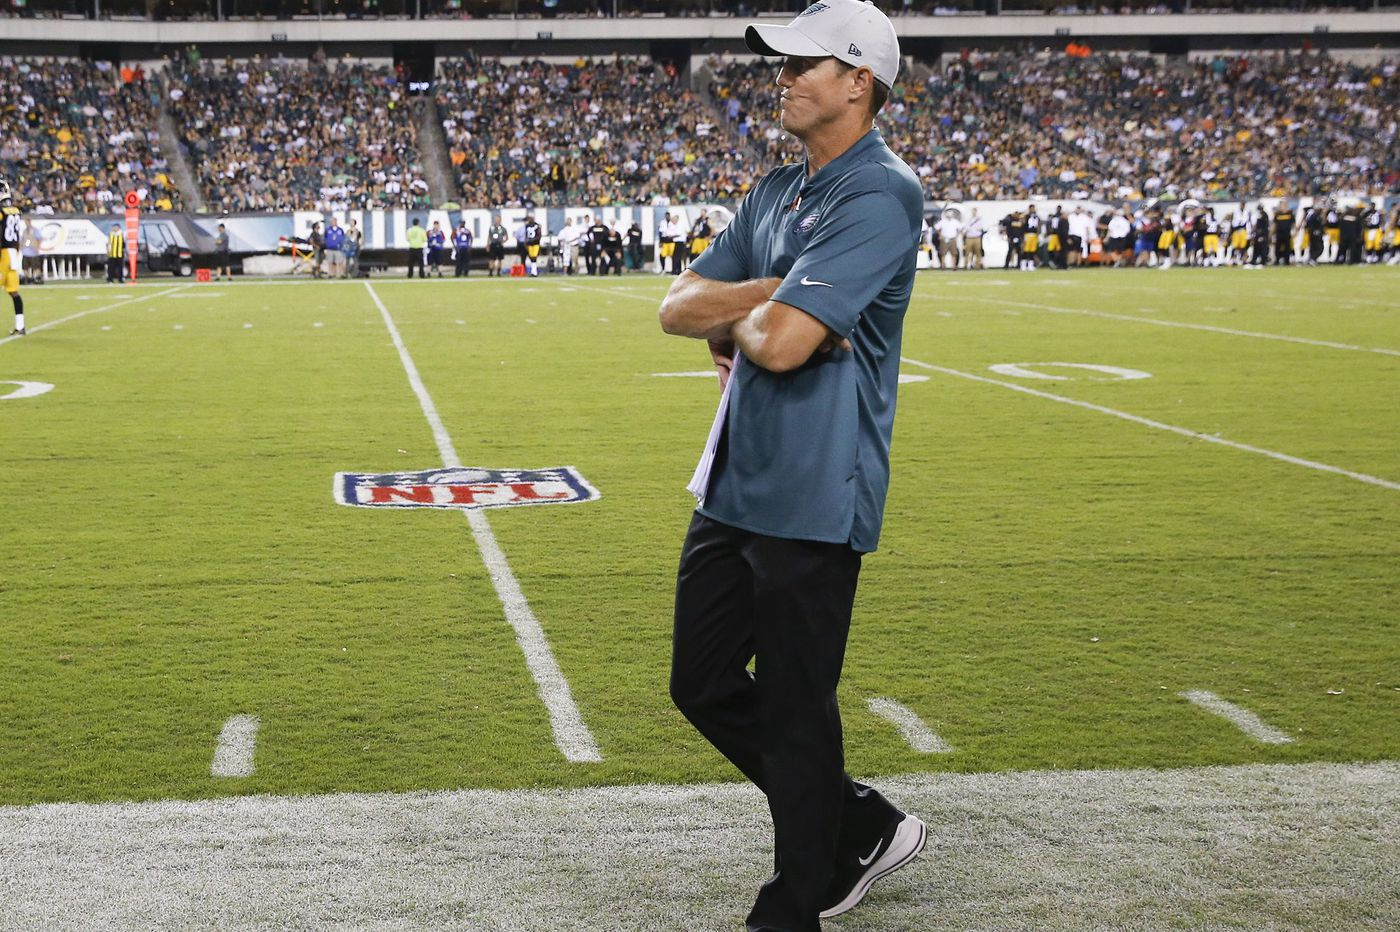 Eagles' Dave Fipp encouraged, patient with new kickoff rules